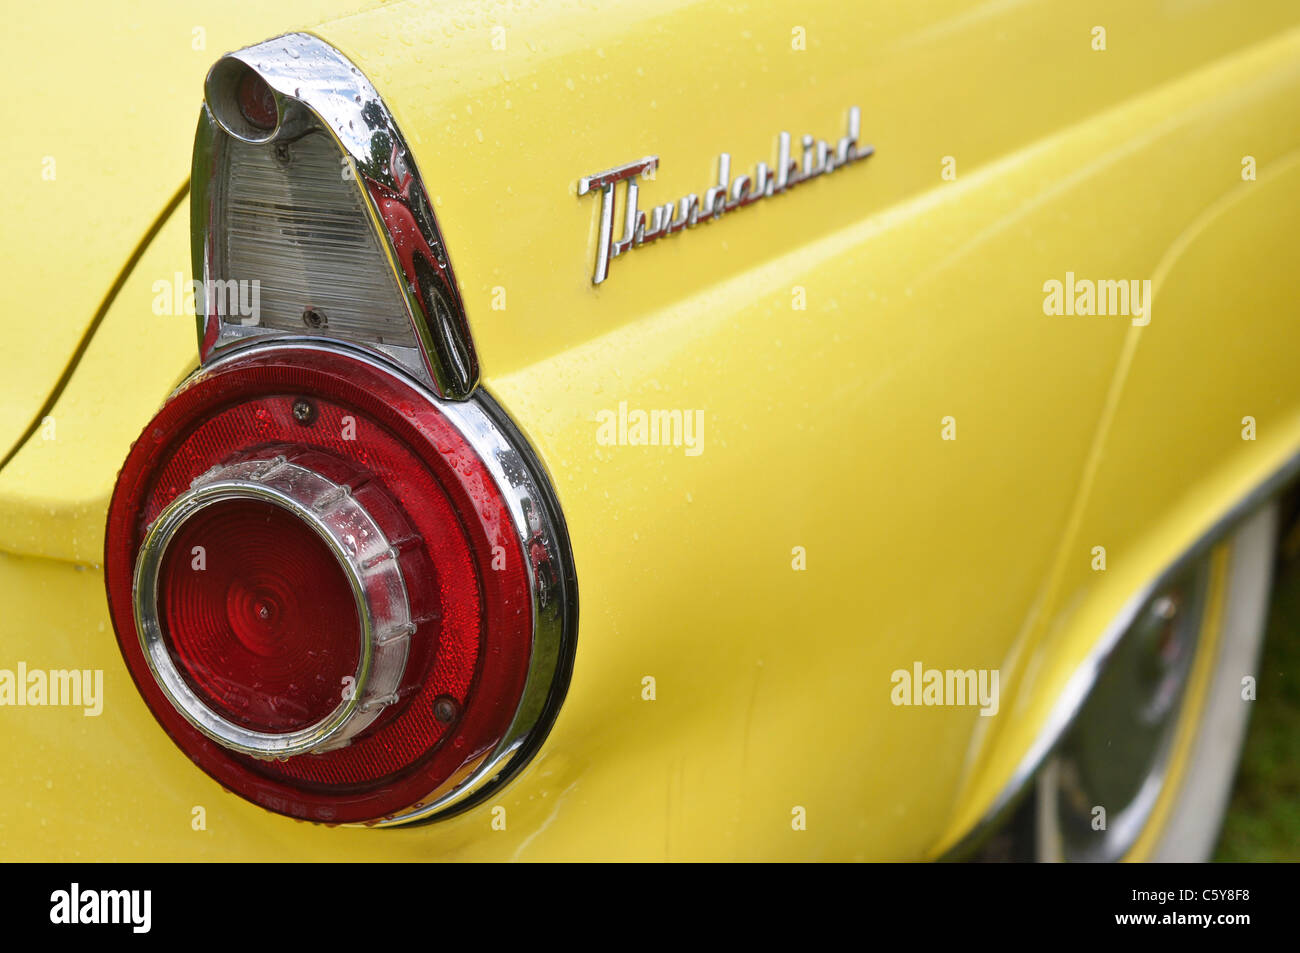 A classic yellow american thunderbird car rear wing fender and light assembly - Stock Image